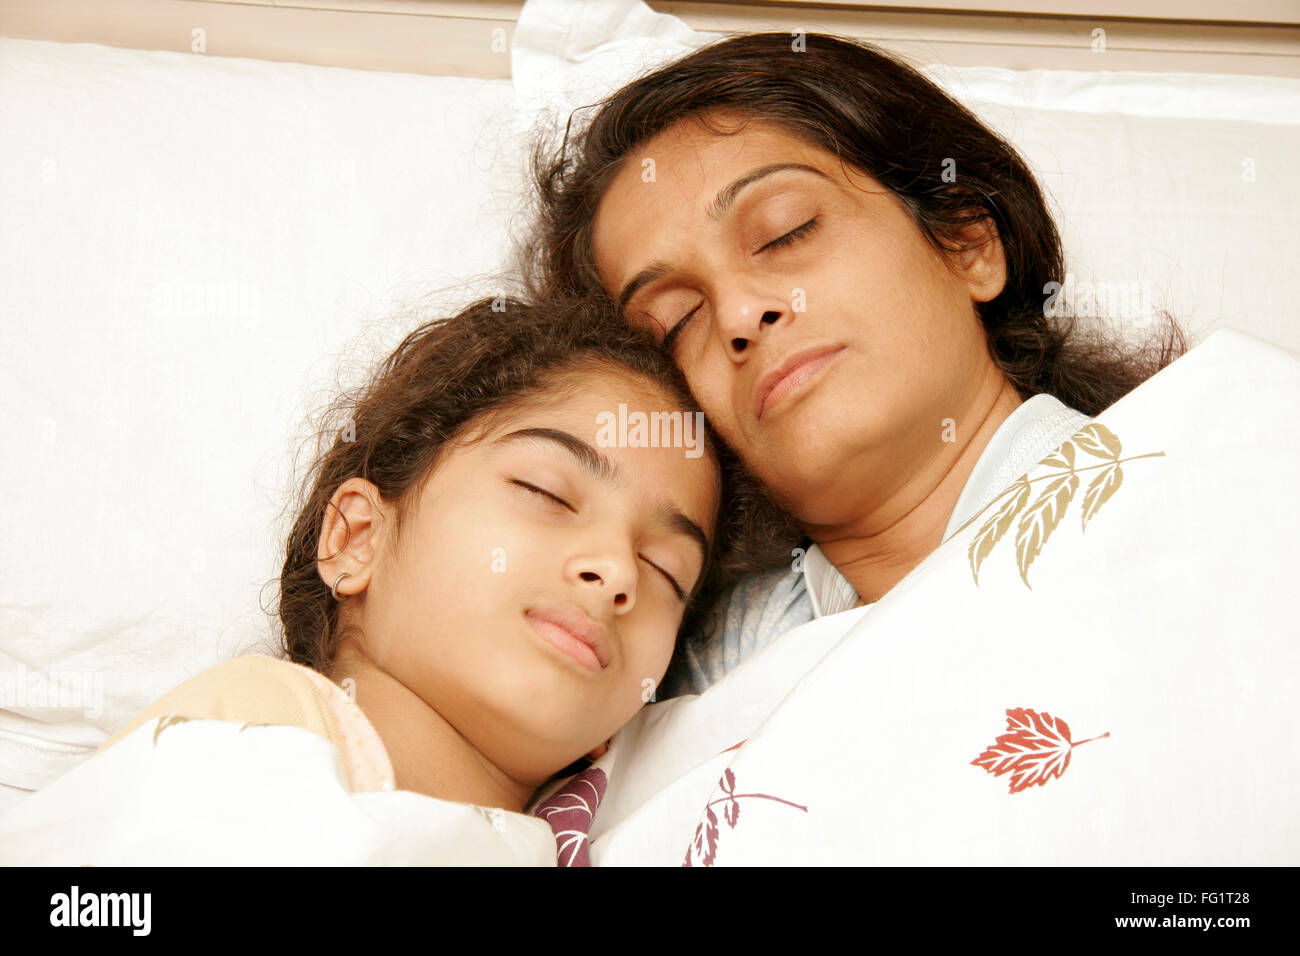 South Asian Indian mother and daughter having sound asleep on bed  MR#191,189 - Stock